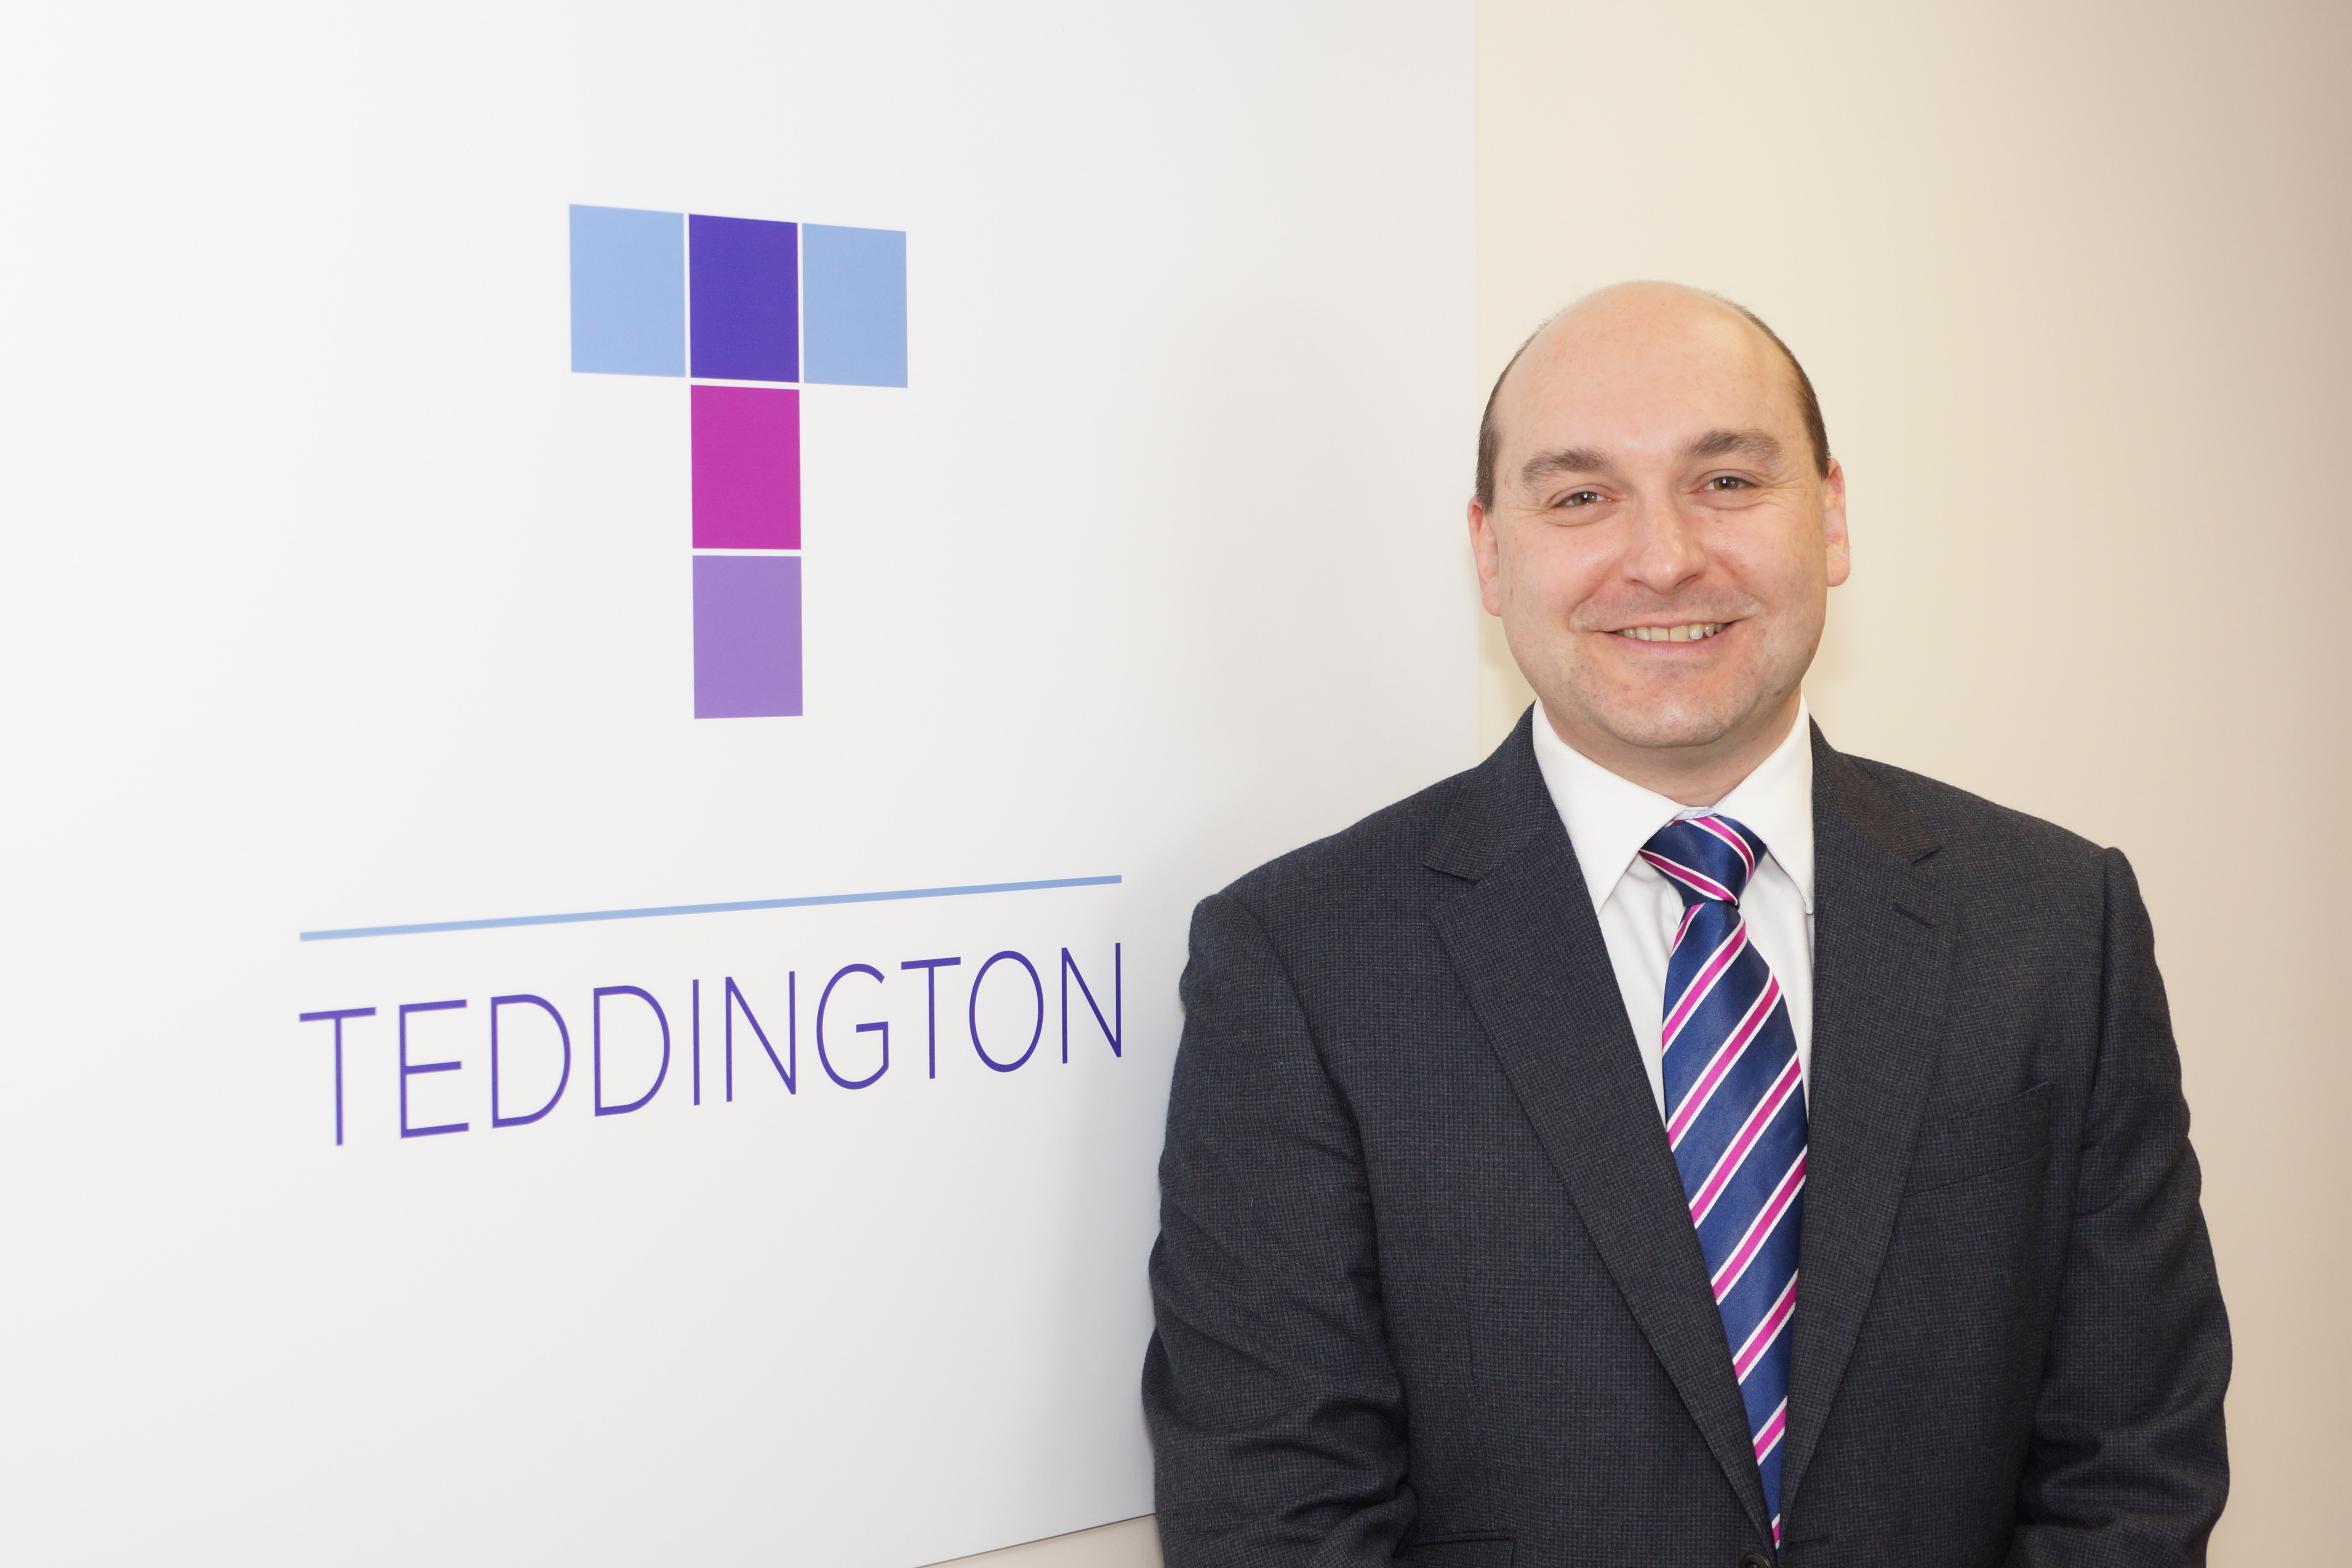 Engineering specialist Teddington caps strong start to financial year with company restructure